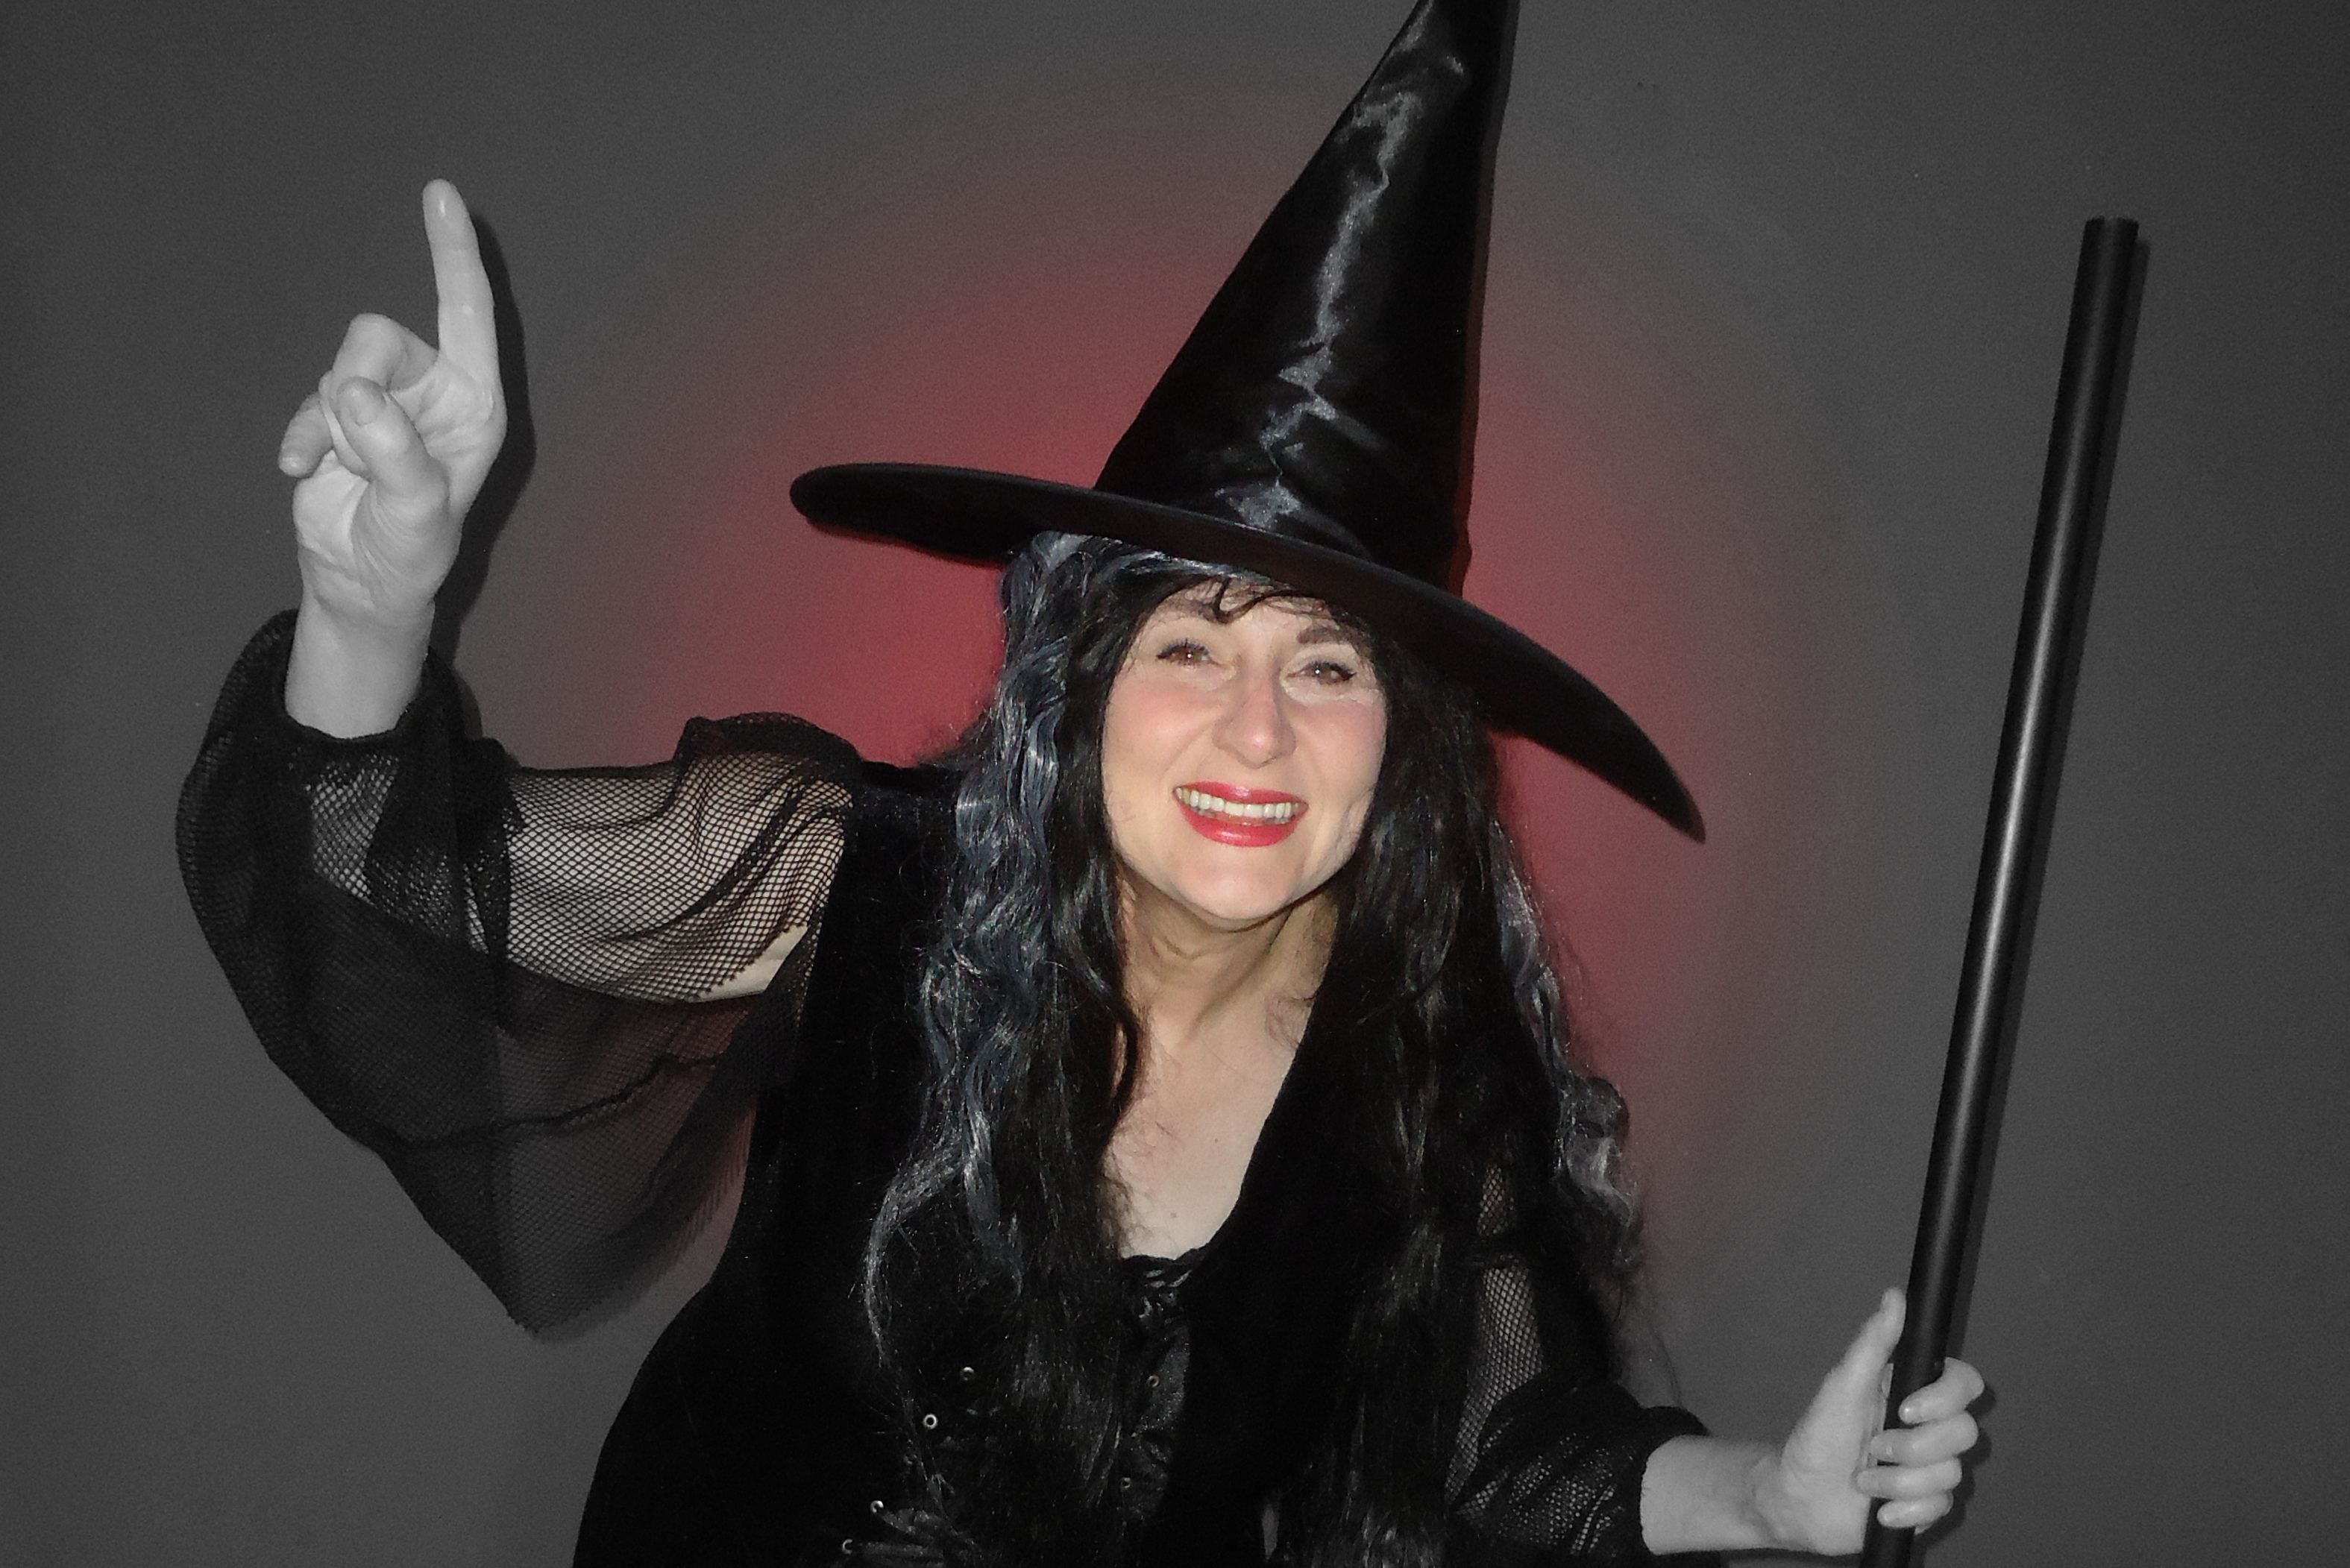 Glenda the Good Witch